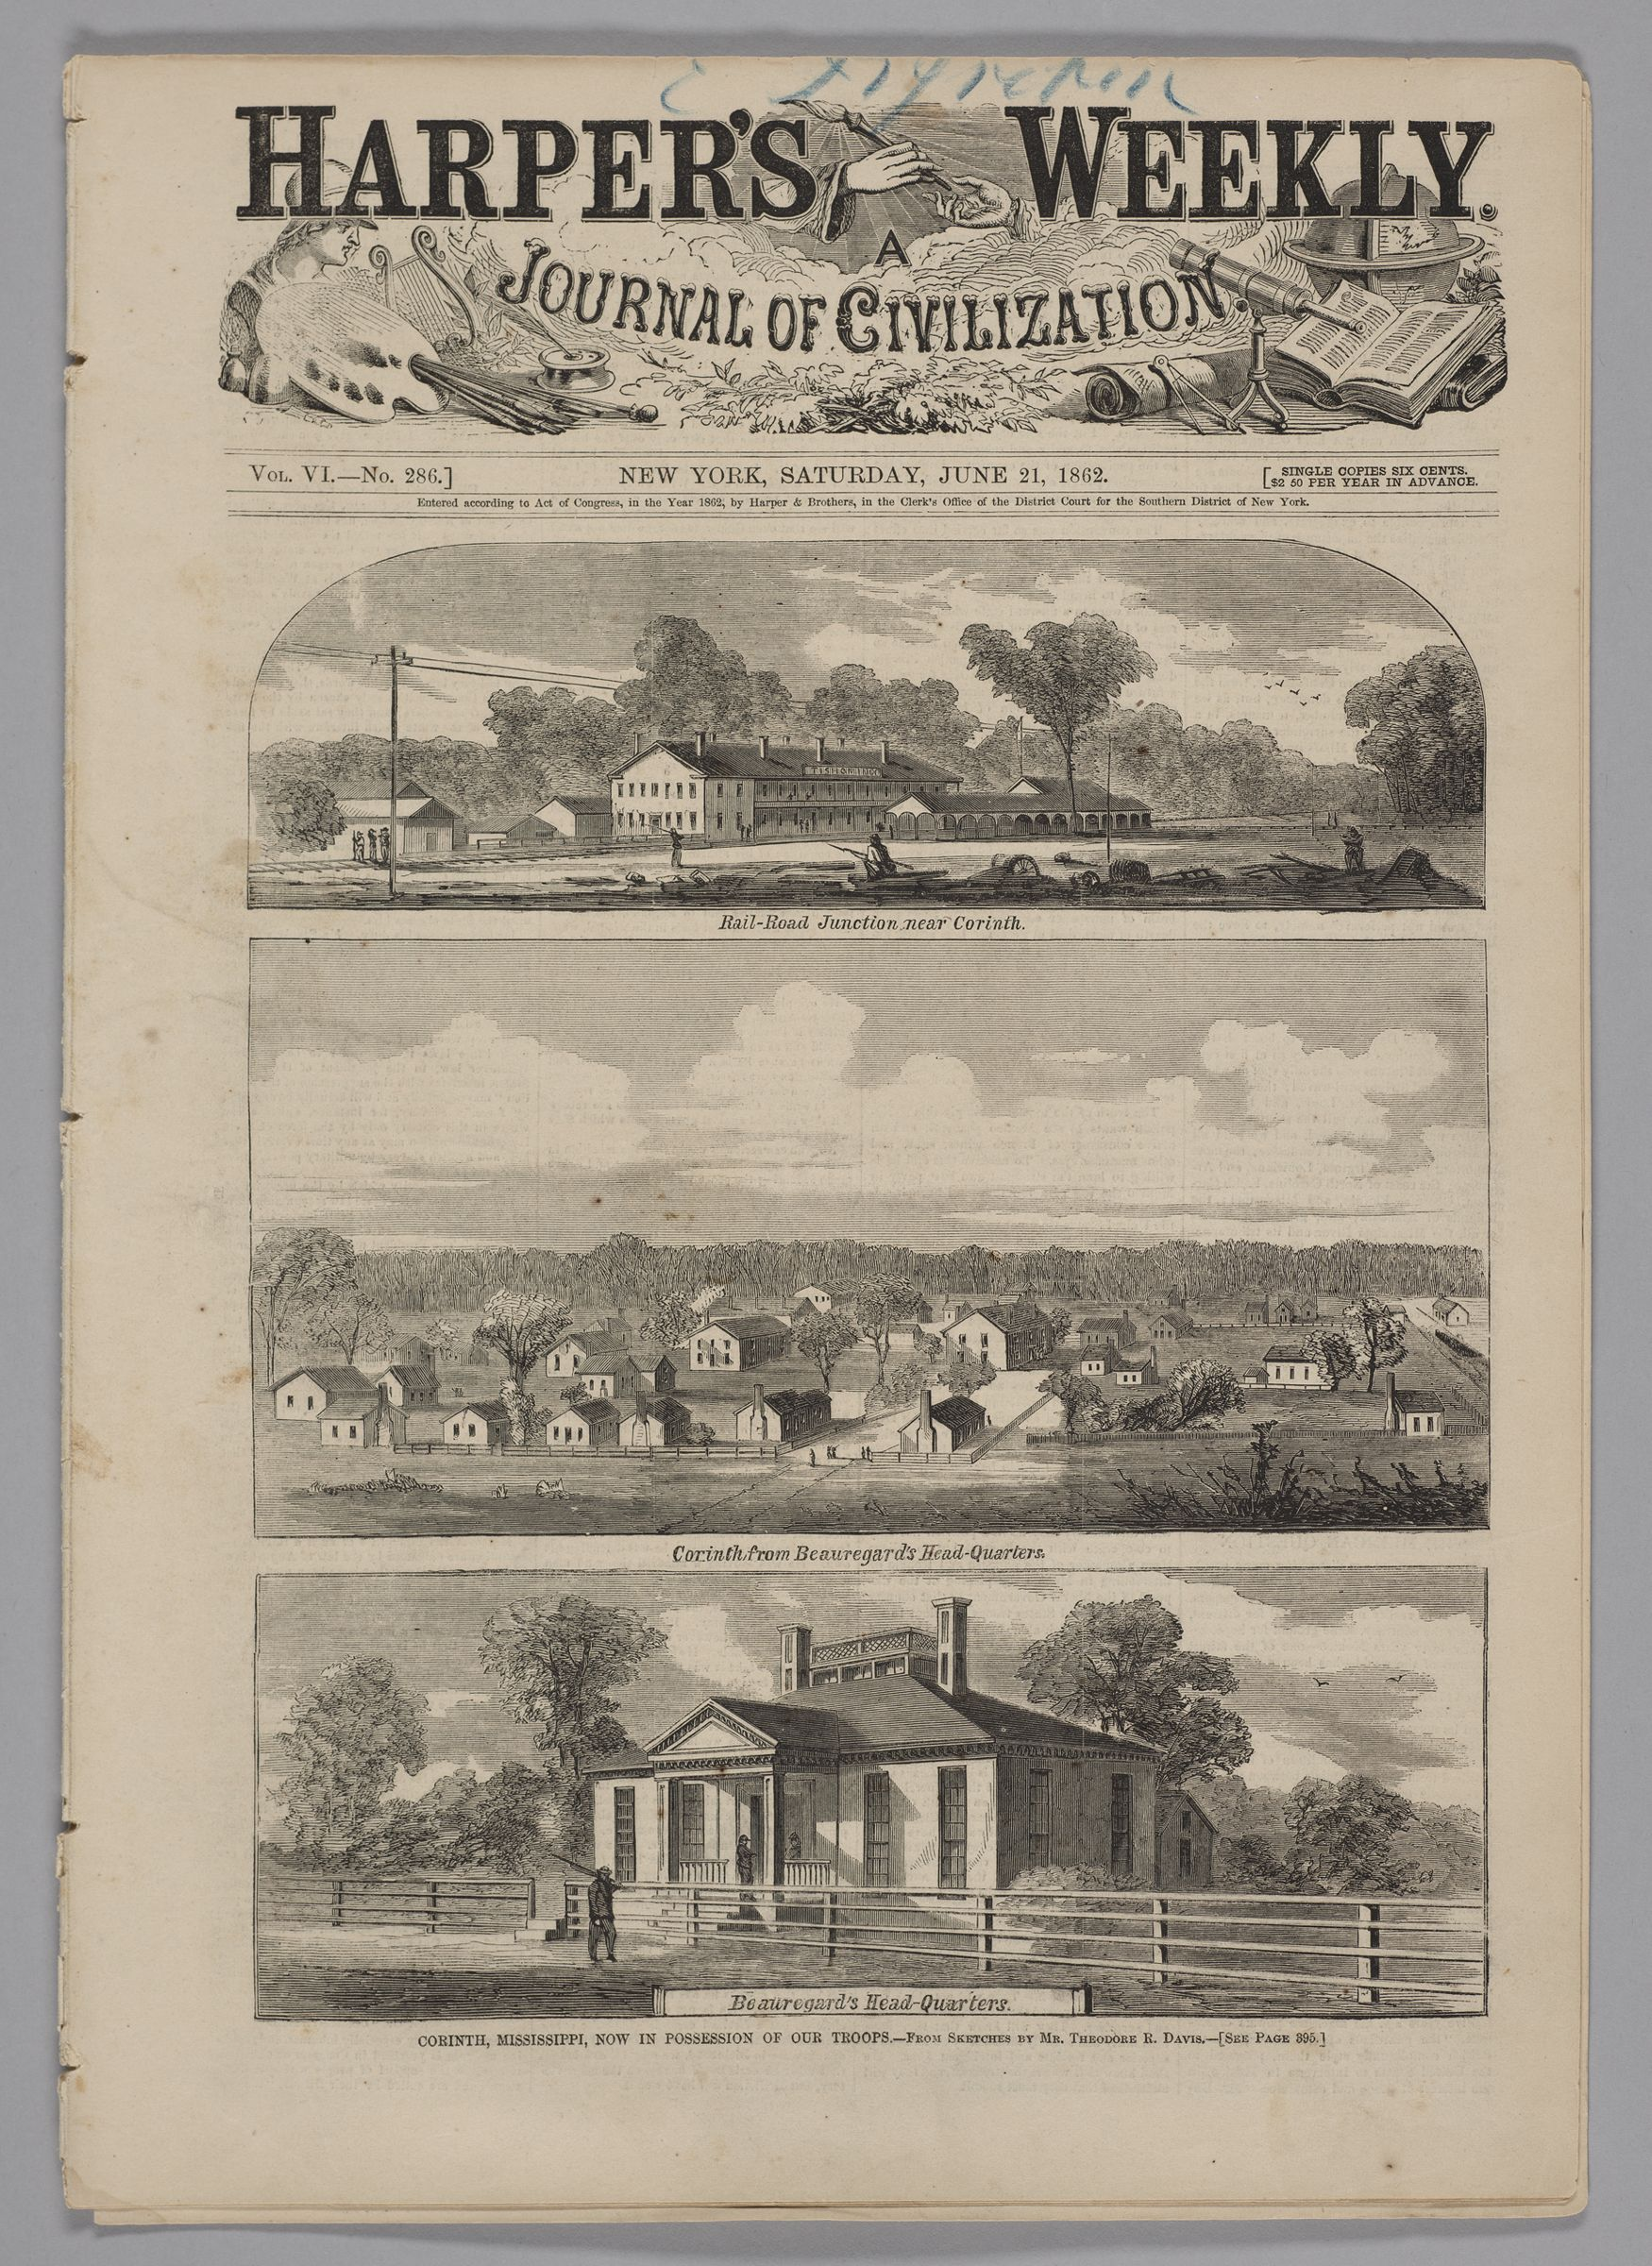 Harper's Weekly, Vol. Vi, No. 286